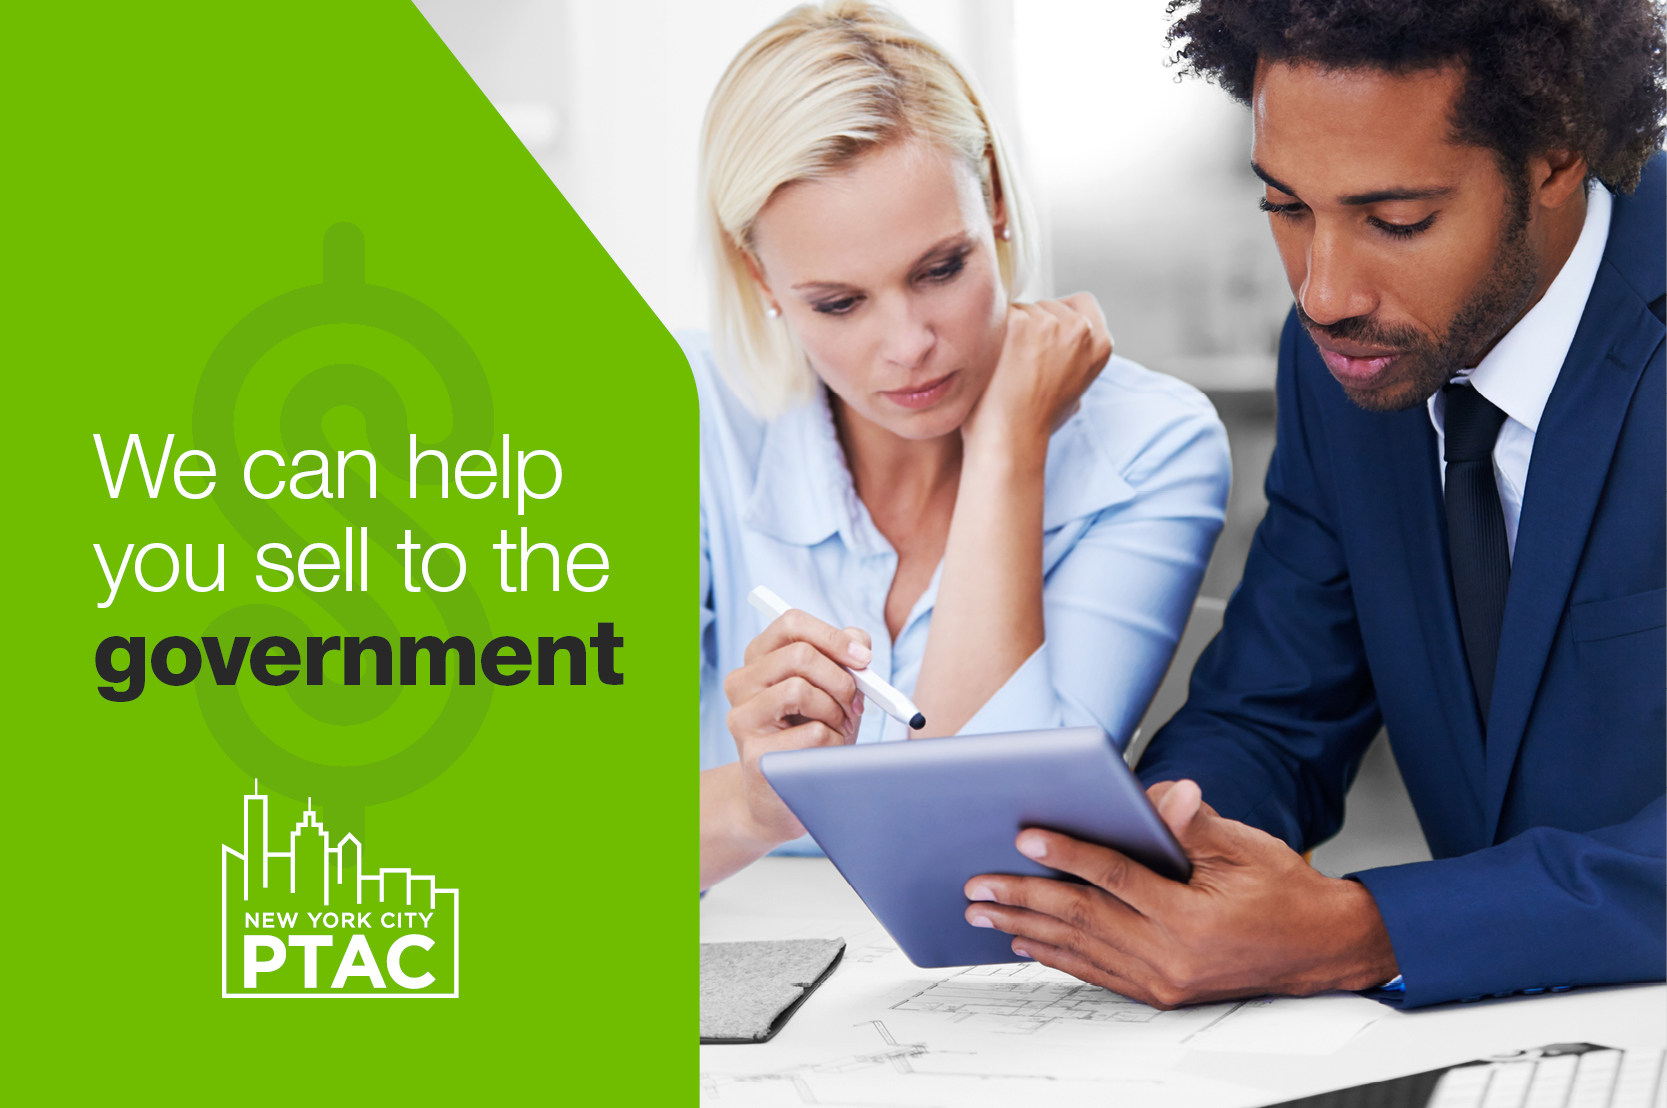 We can help you sell to the government.